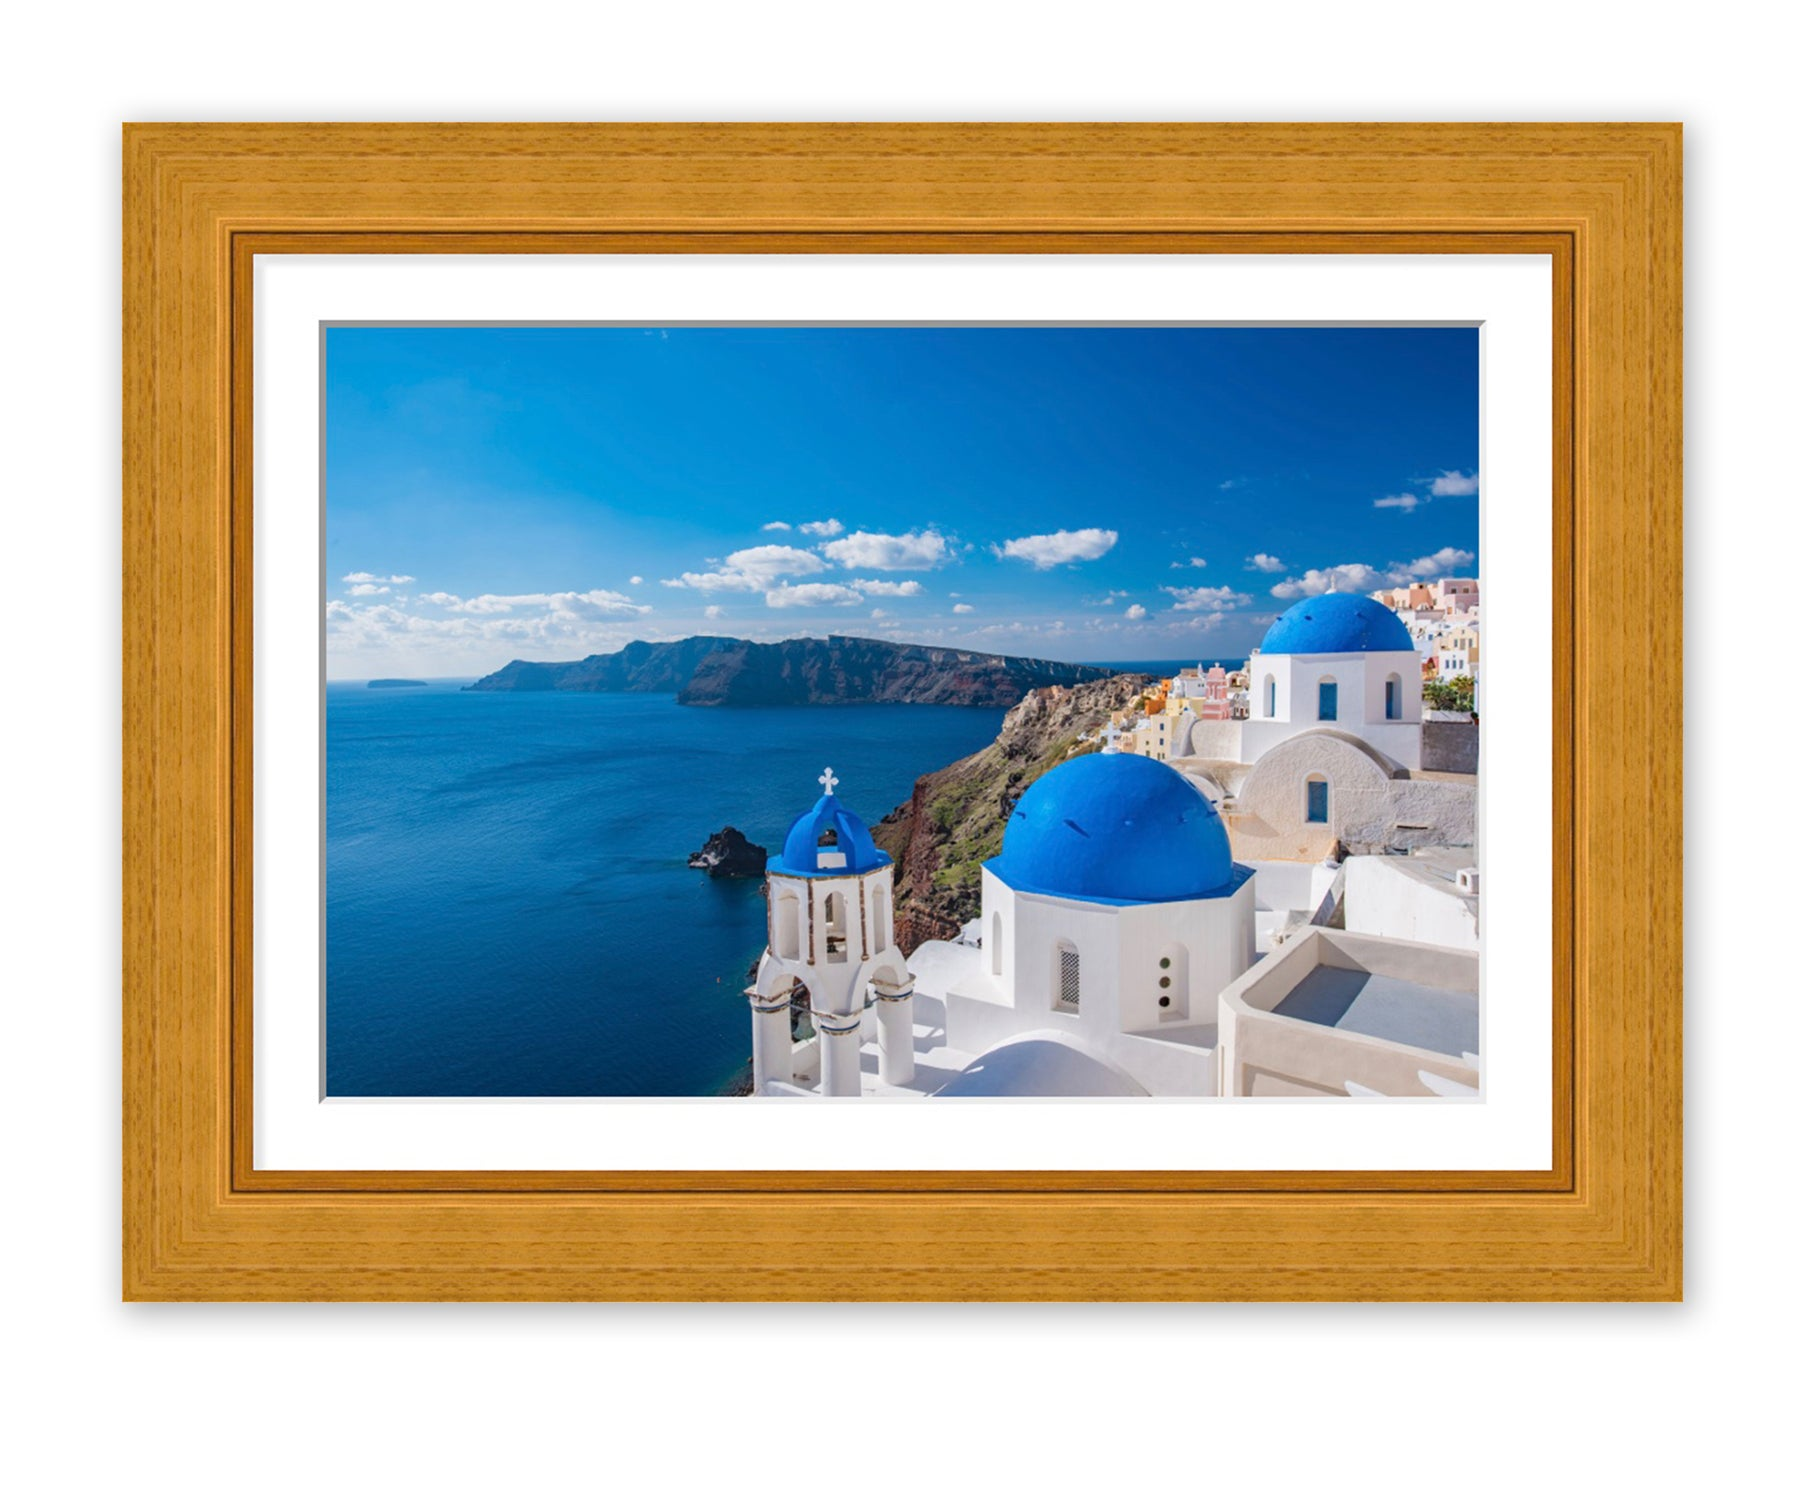 Old School Framed Print example